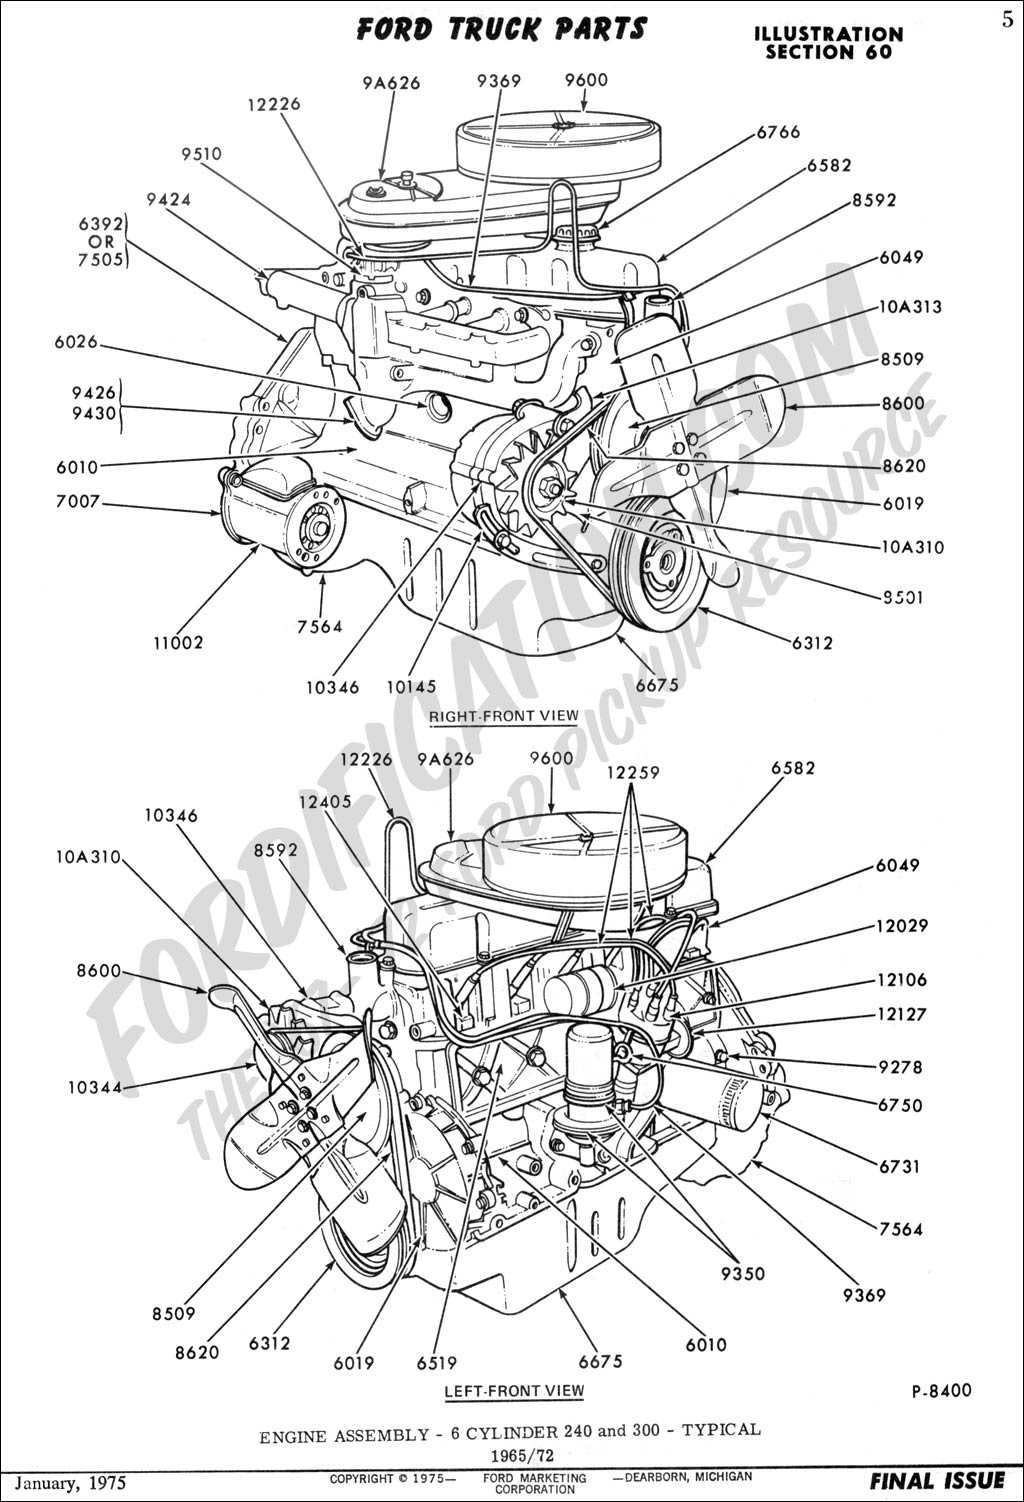 Ford Ranger Ignition System Wiring Diagram. Ford. Wiring Diagrams ...